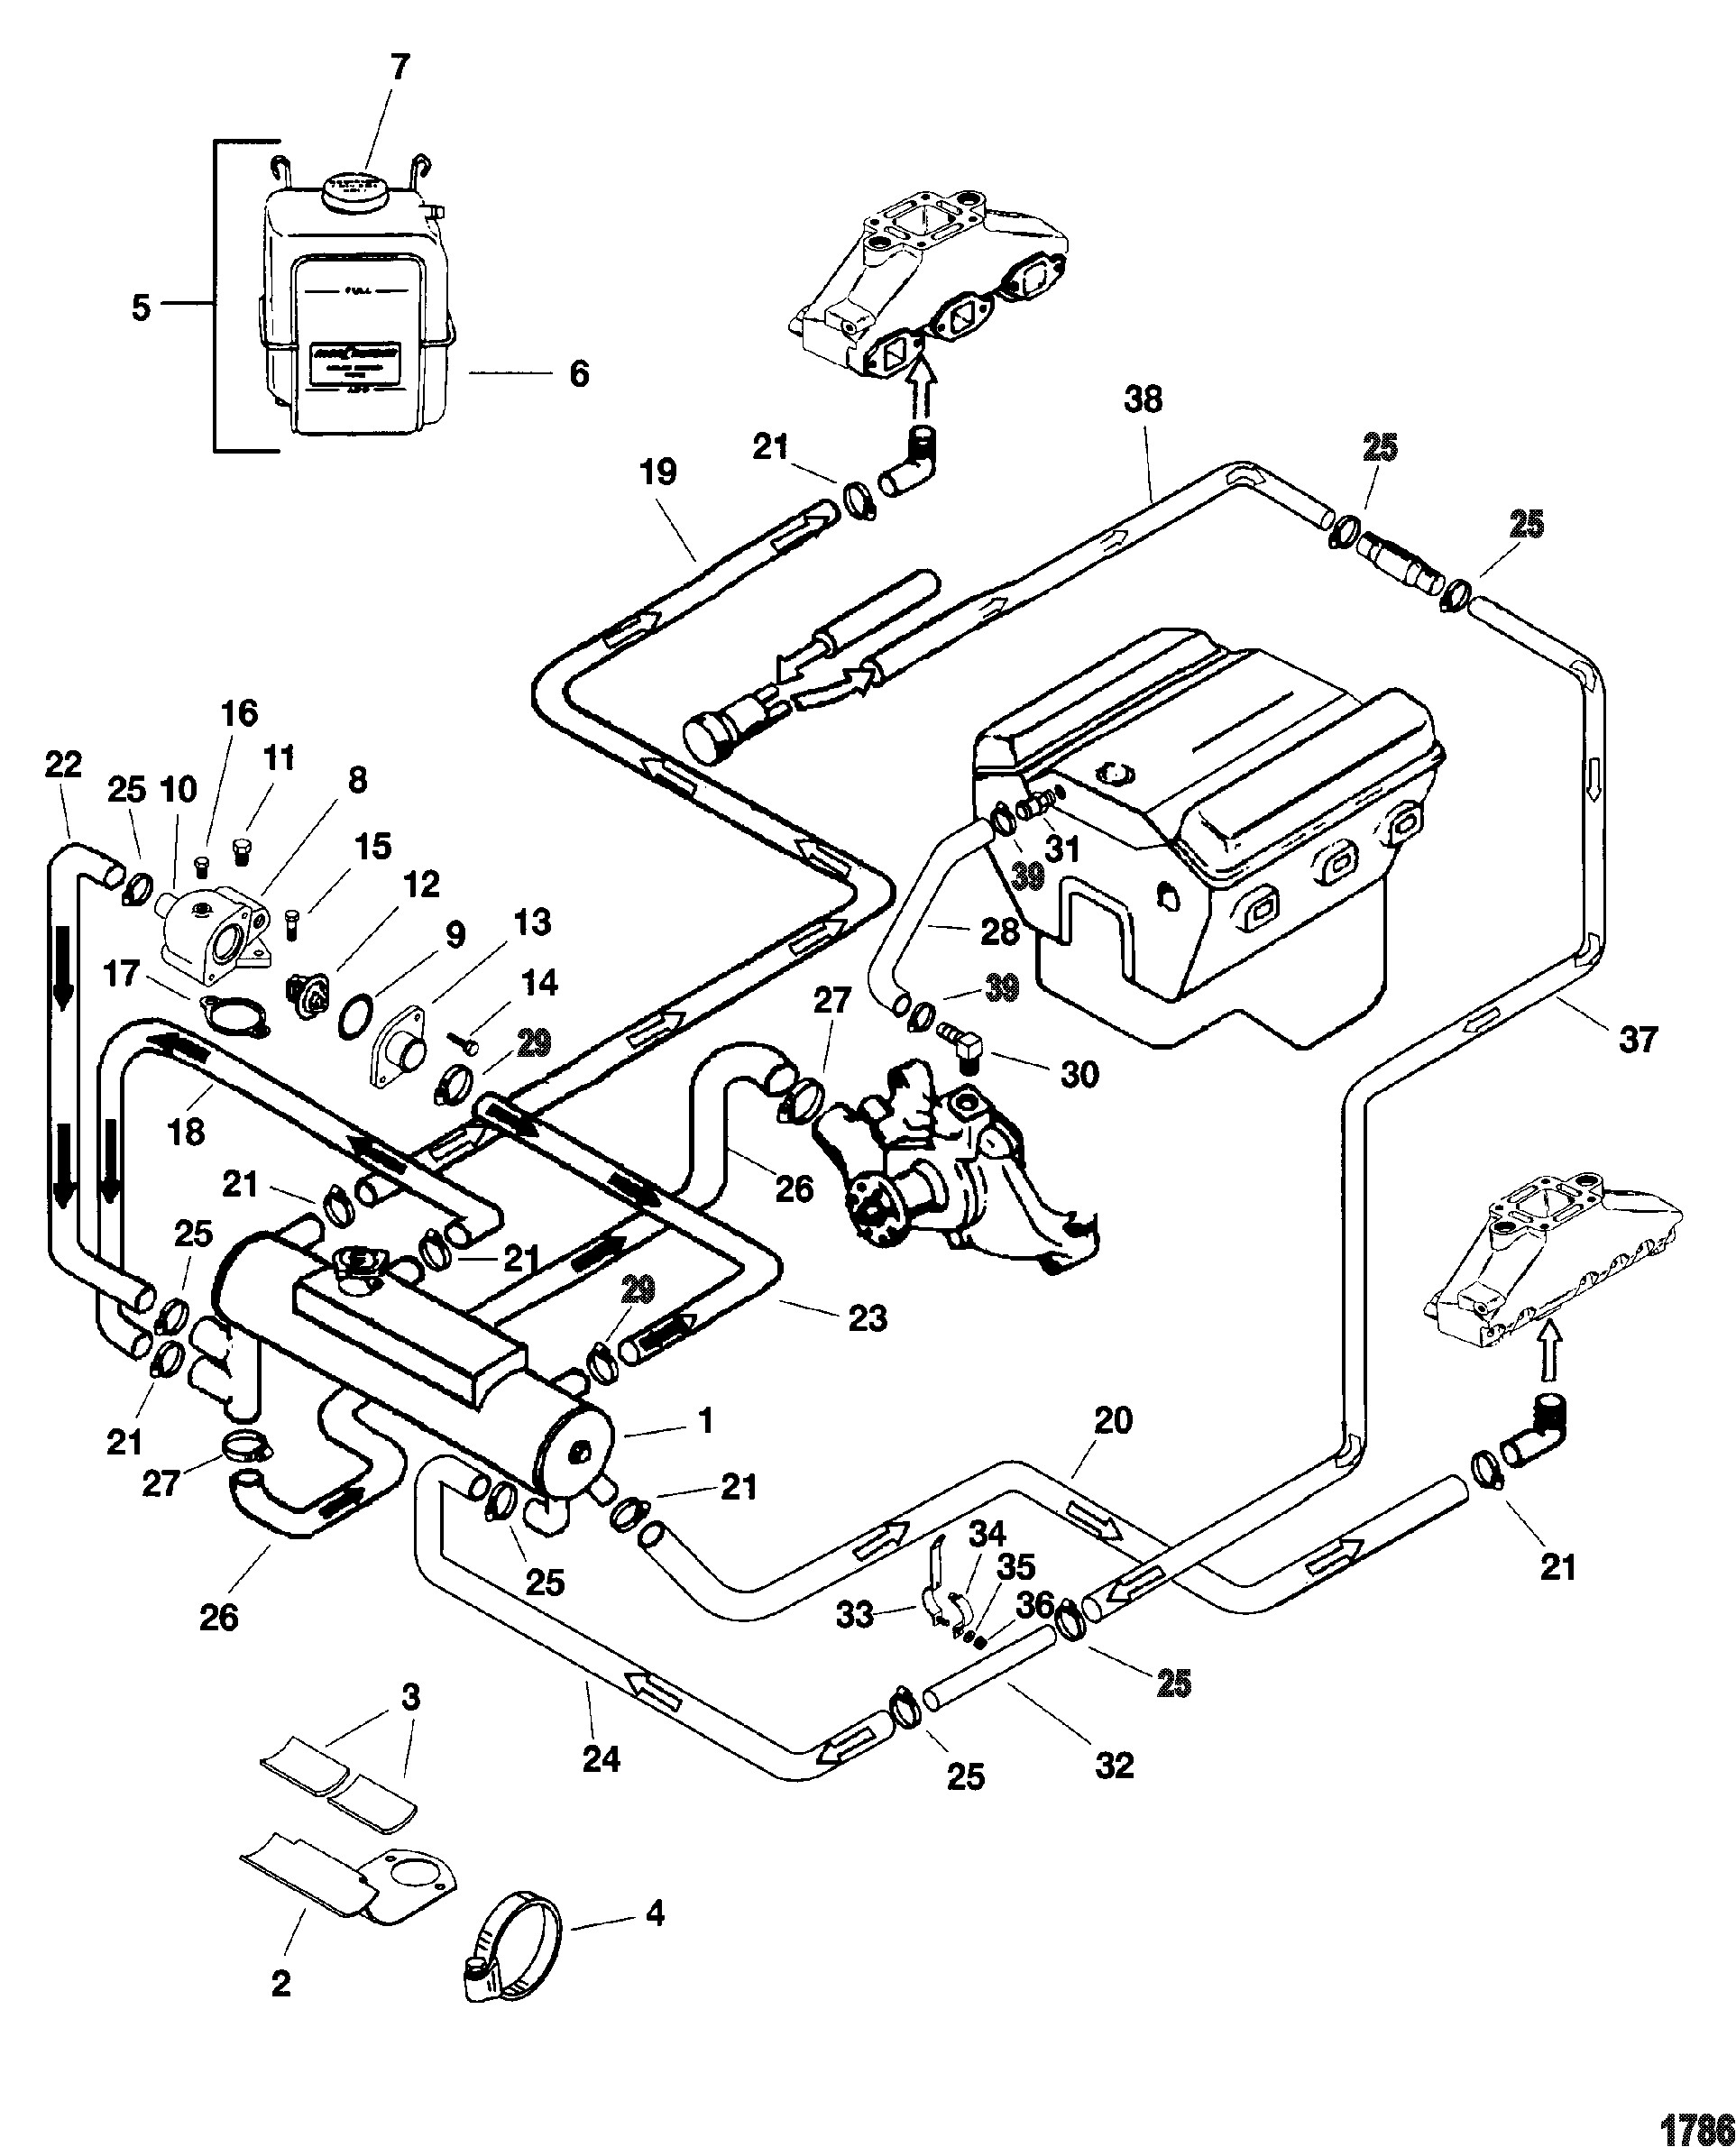 gm 3.8 wiring diagram